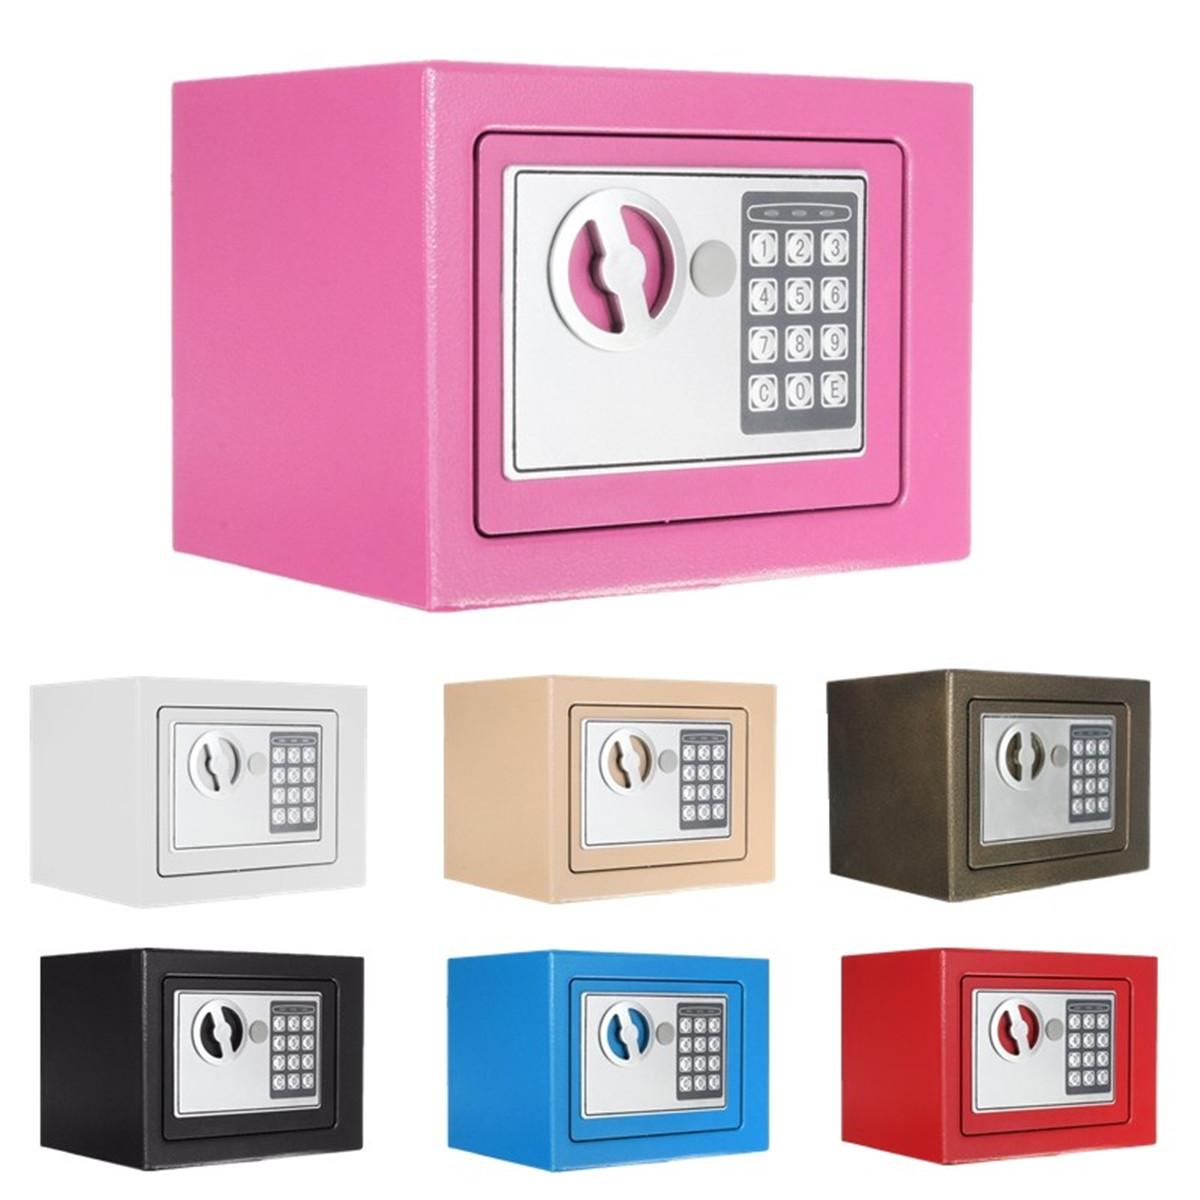 New Electronic Safe Box Digital Security Keypad Lock Office Home Hotel Fireproof Digital Entry Security Box With Two KeysNew Electronic Safe Box Digital Security Keypad Lock Office Home Hotel Fireproof Digital Entry Security Box With Two Keys